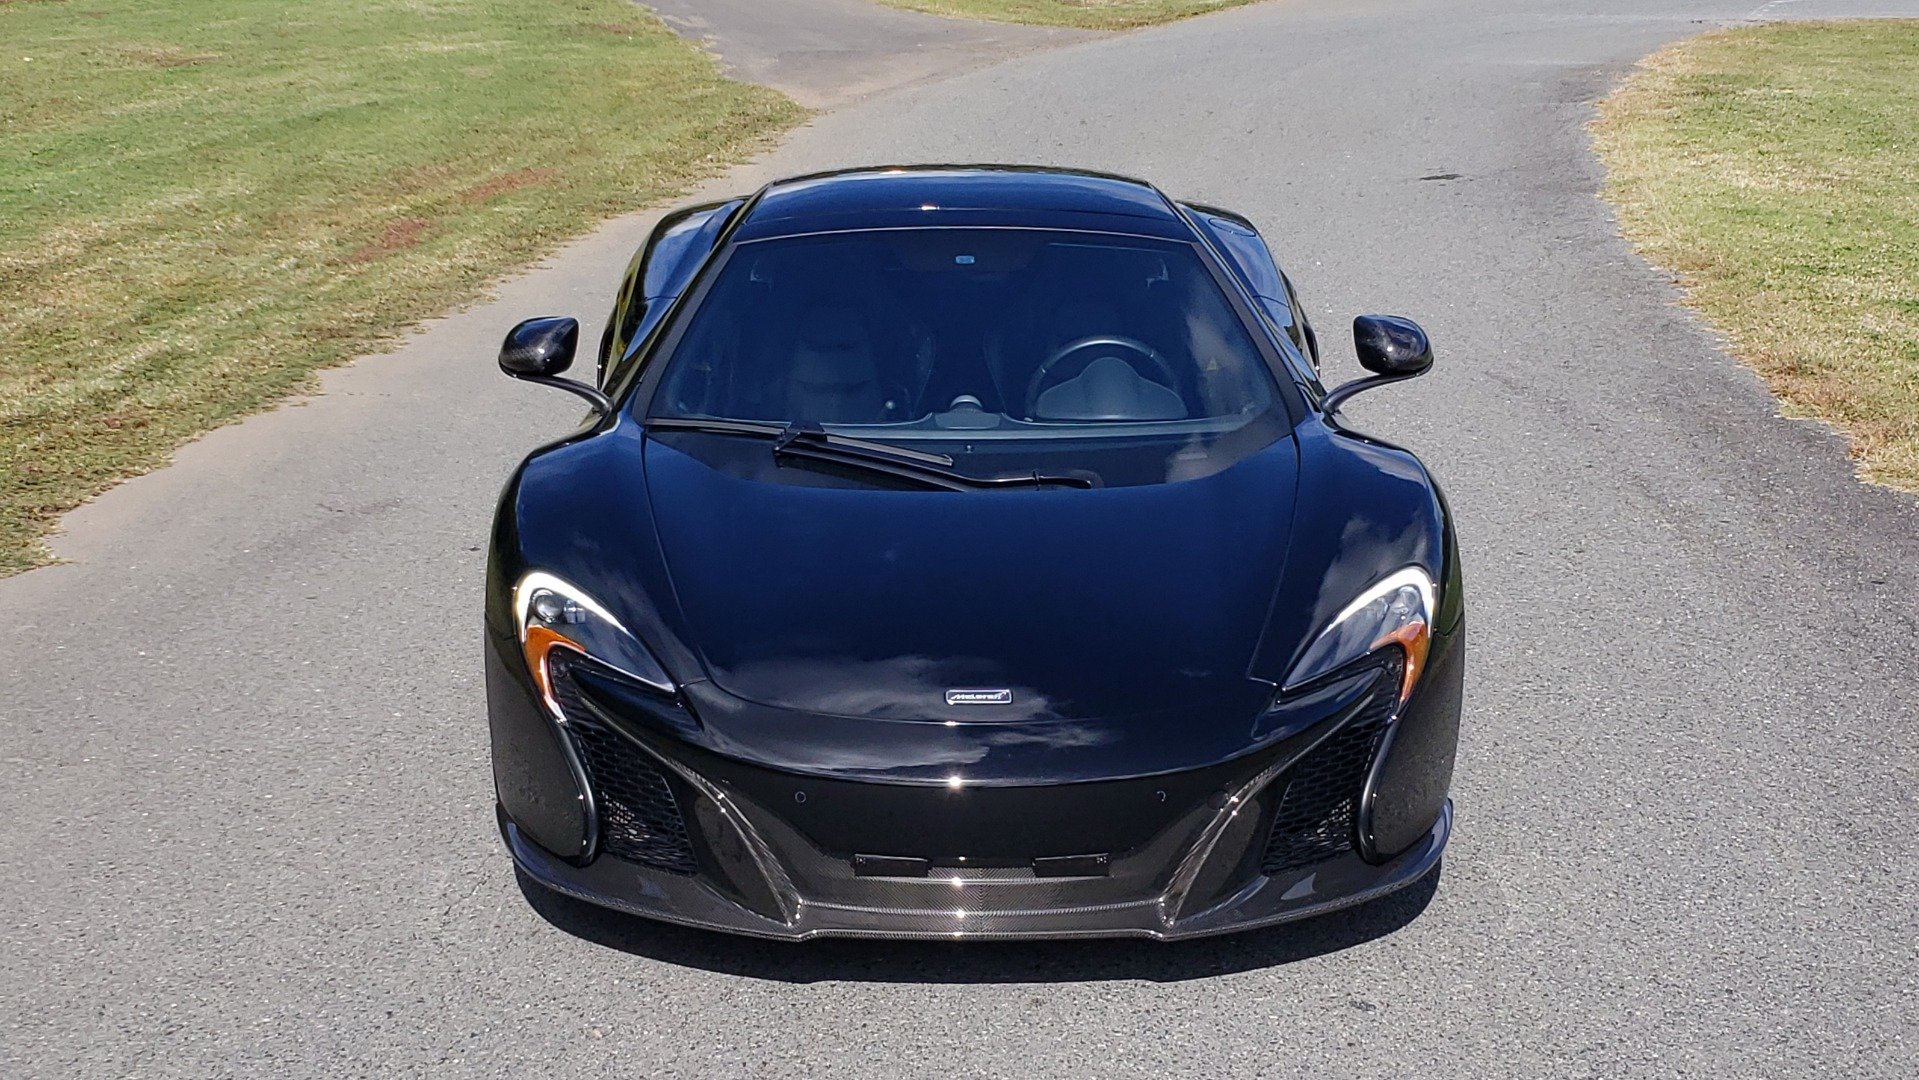 Used 2016 McLaren 650S SPIDER / 641HP / PARK SENSORS / LOW MILES / 1-OWNER for sale Sold at Formula Imports in Charlotte NC 28227 26